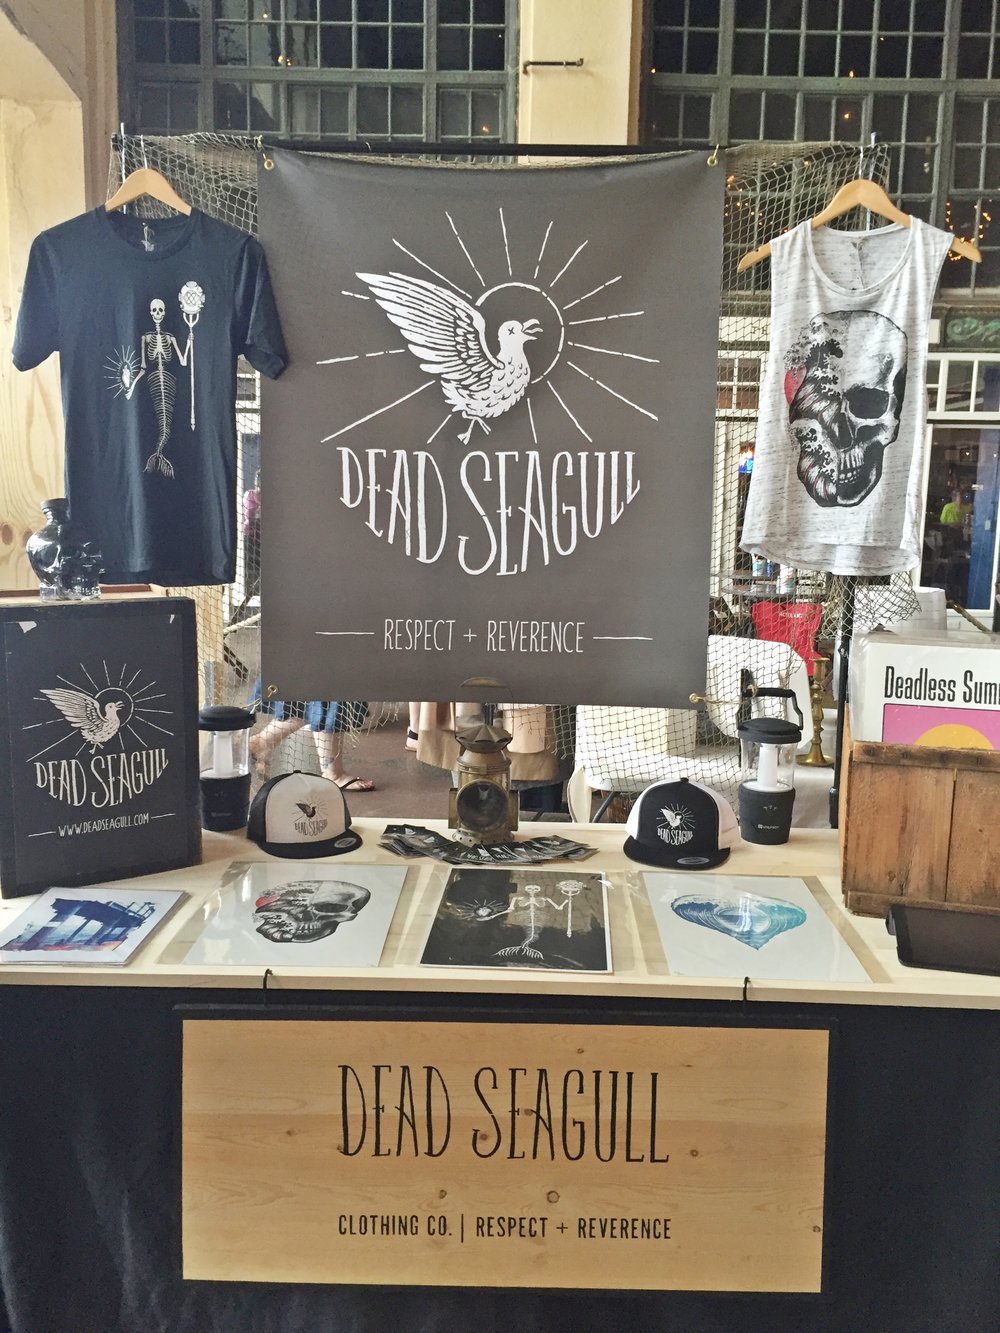 dead seagull clothing co. -  artwork/apparel Saturday & Sunday